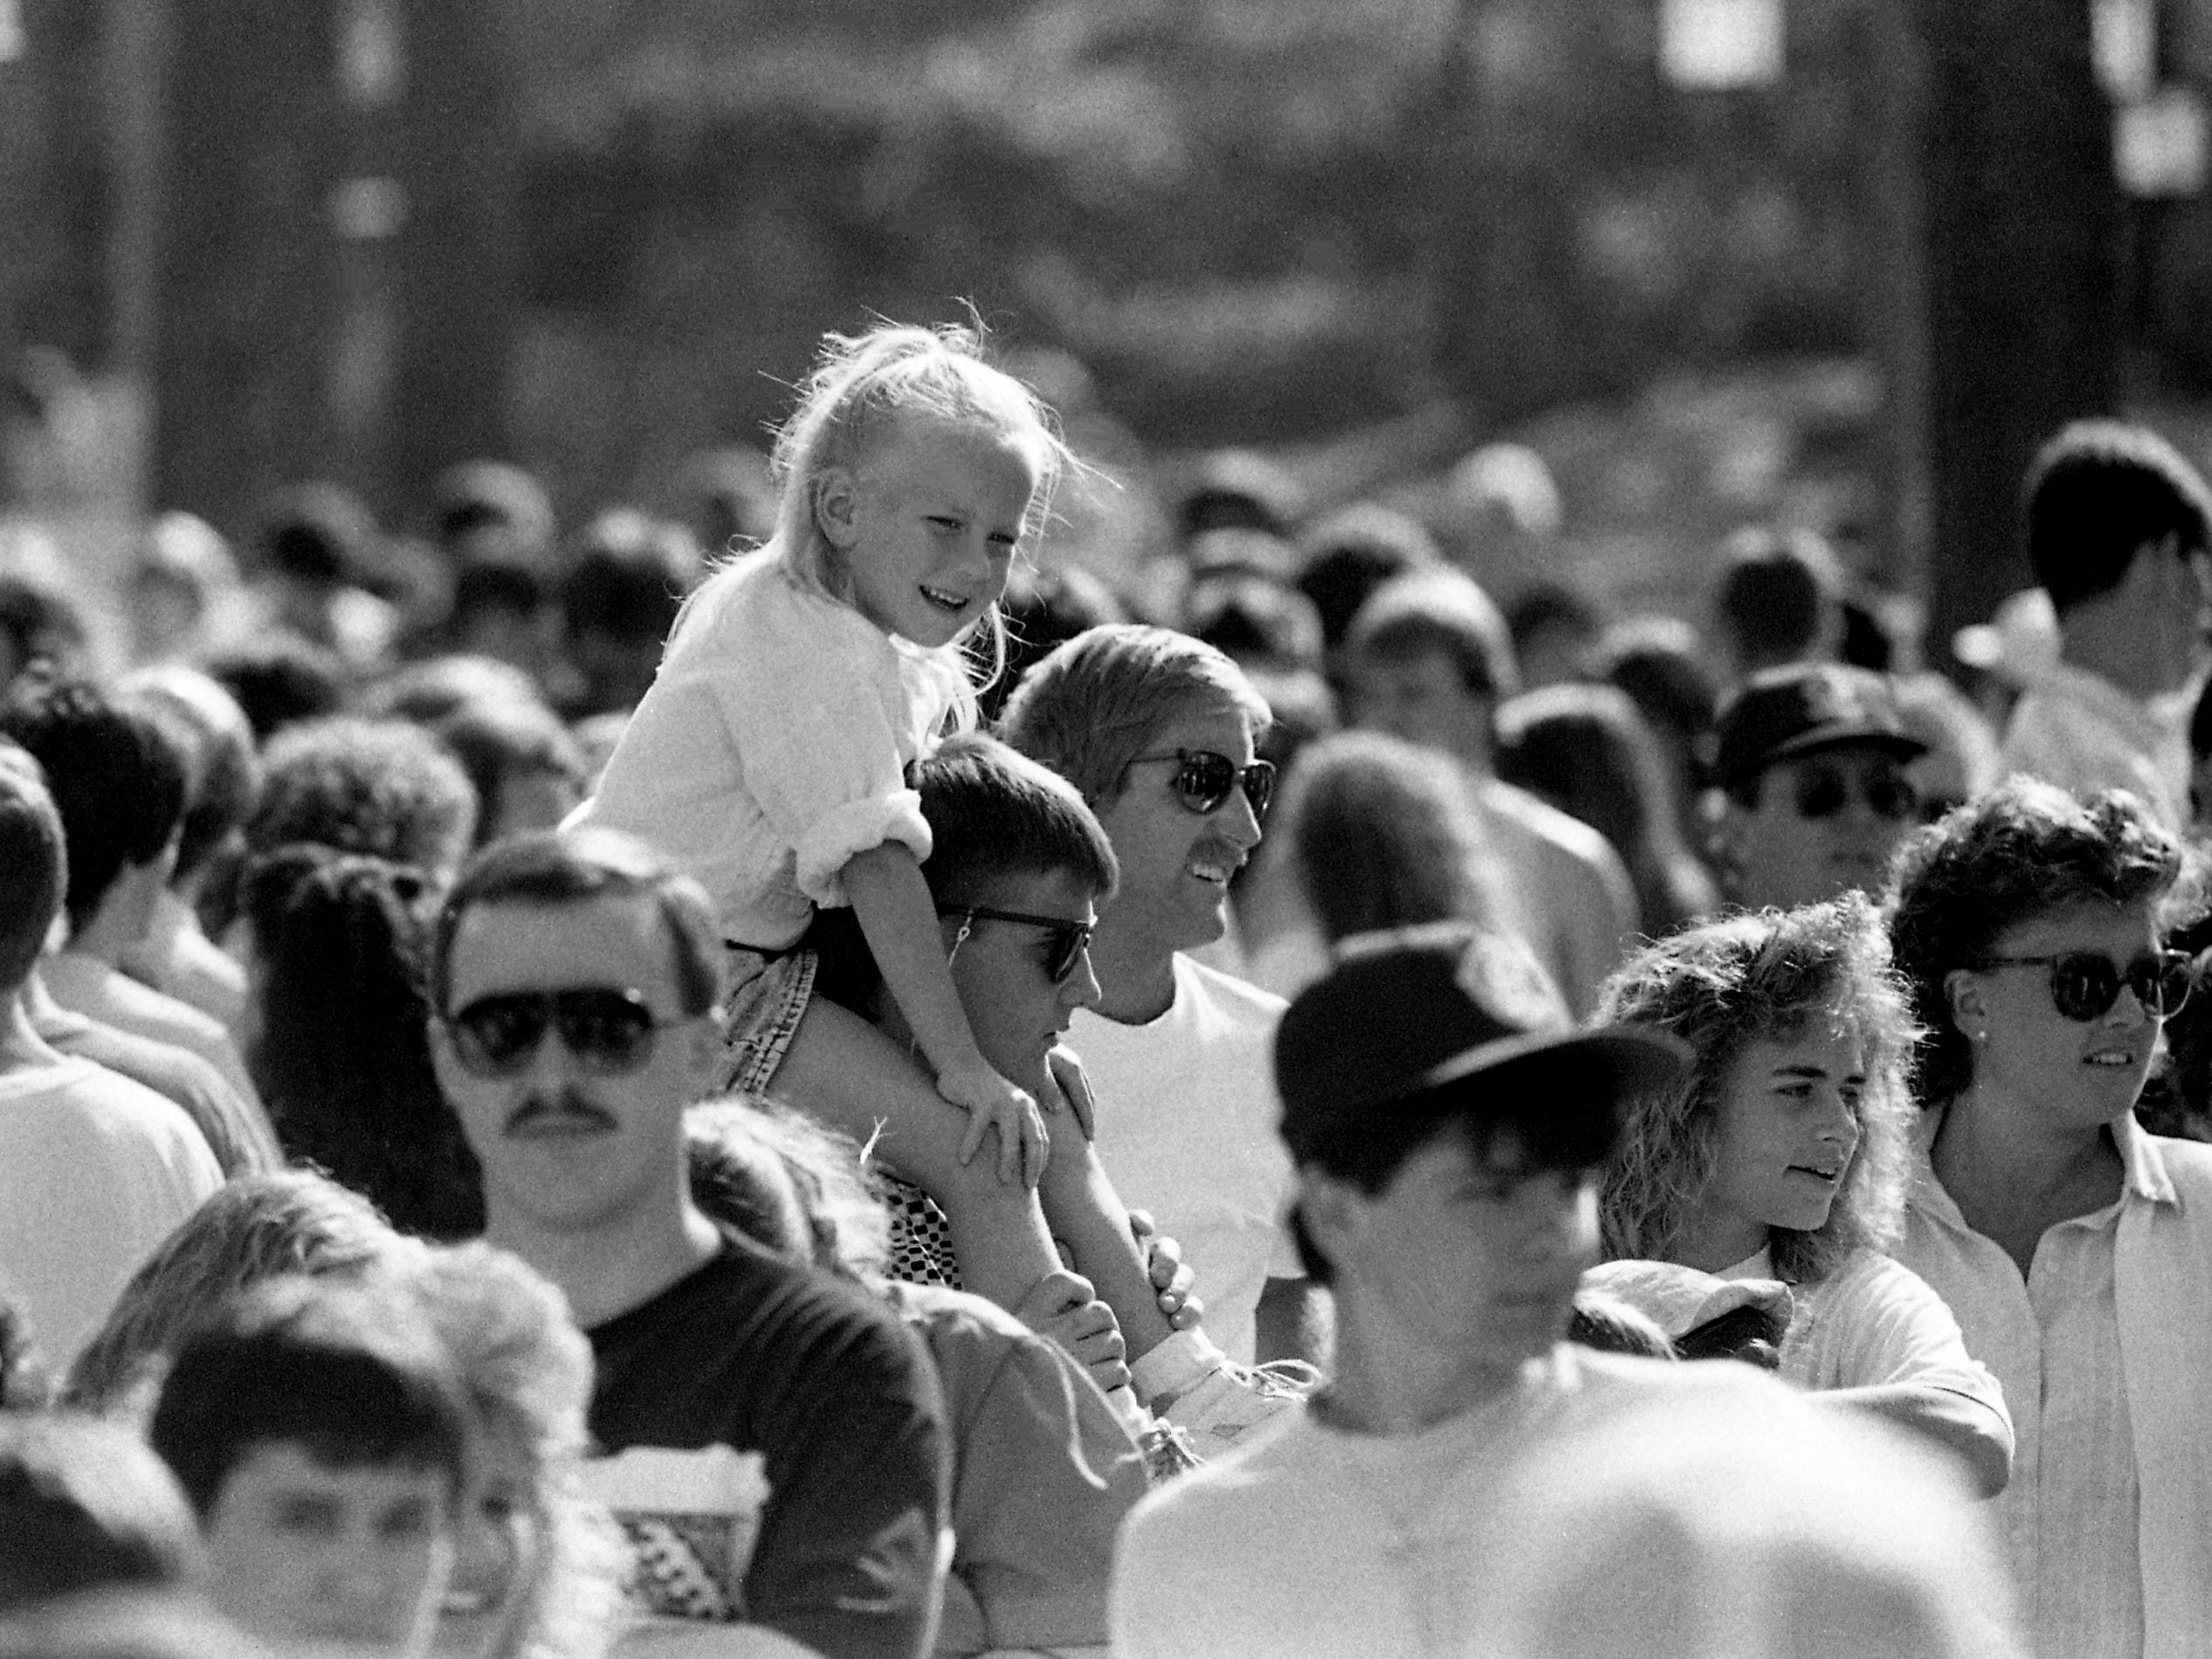 Californian Jody Inman gives his sister Tiffany a lift while they wait in line for the debut of Opryland U.S.A. theme park's new $7 million ride, Chaos, on opening day of the 18th season March 25, 1989.